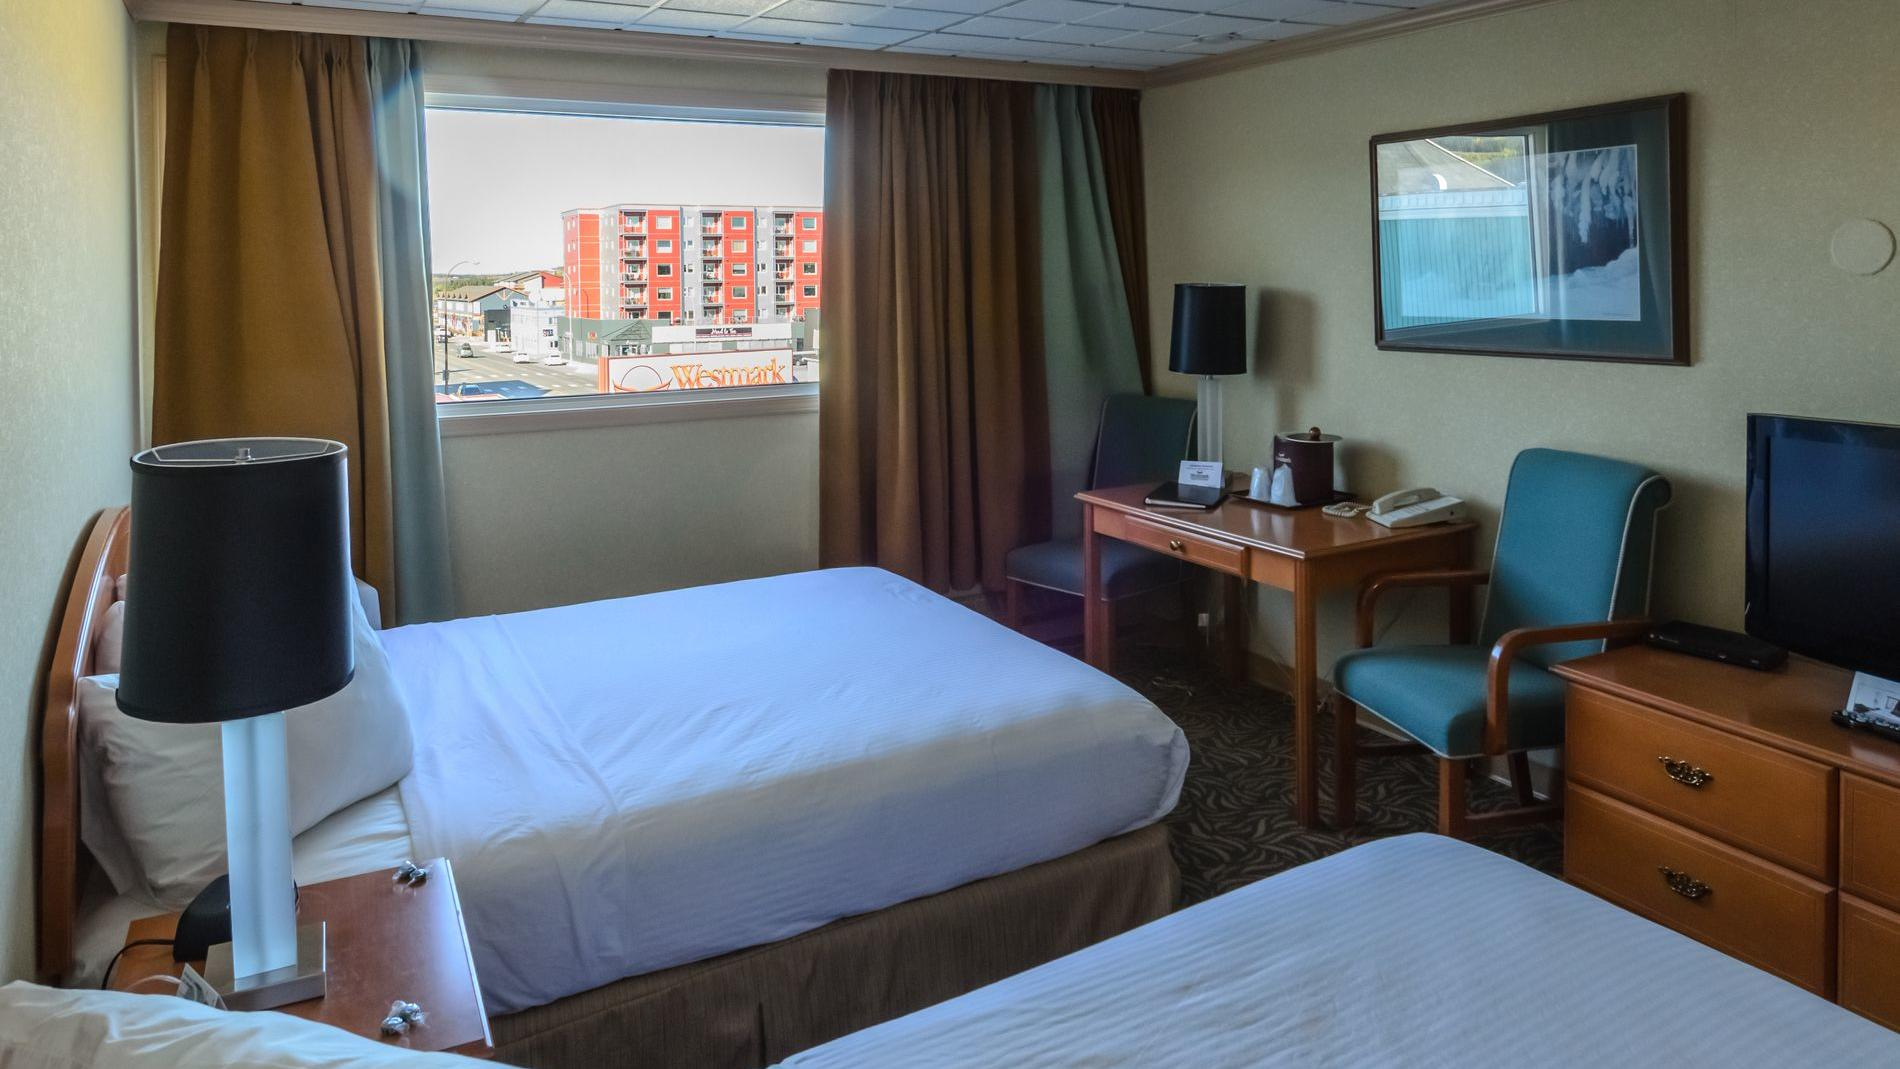 Picture of: Standard Room 2 Queen Beds Whitehorse Hotel Rooms